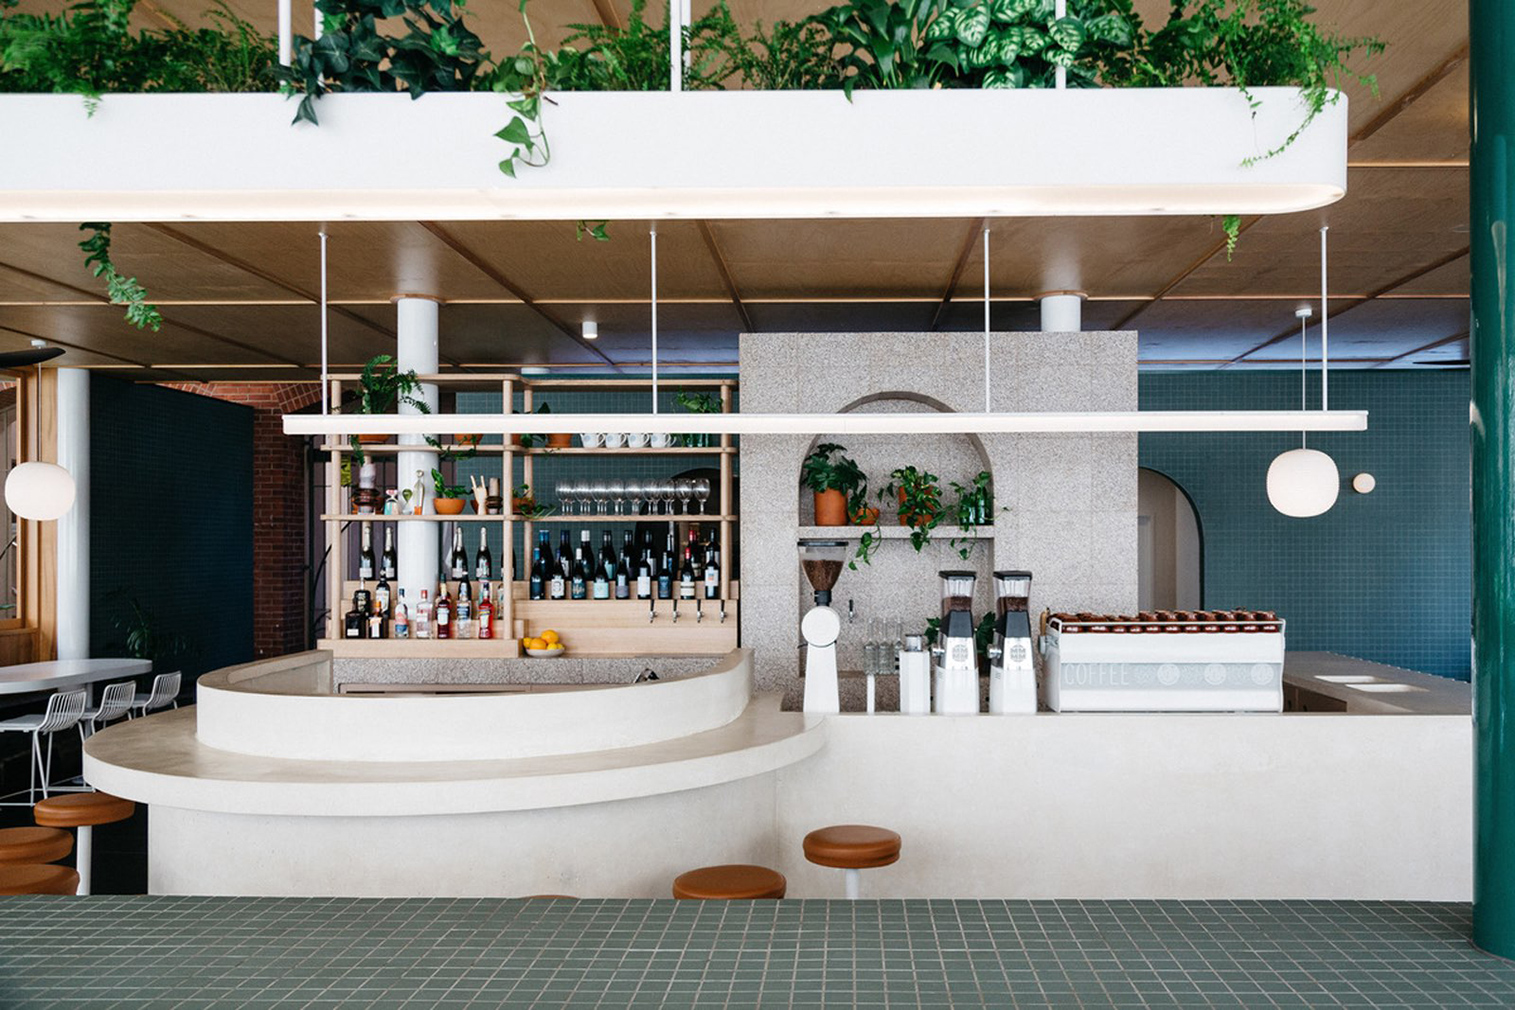 Part Time Lover is a 'warm, bright moment' in Adelaide's restaurant scene